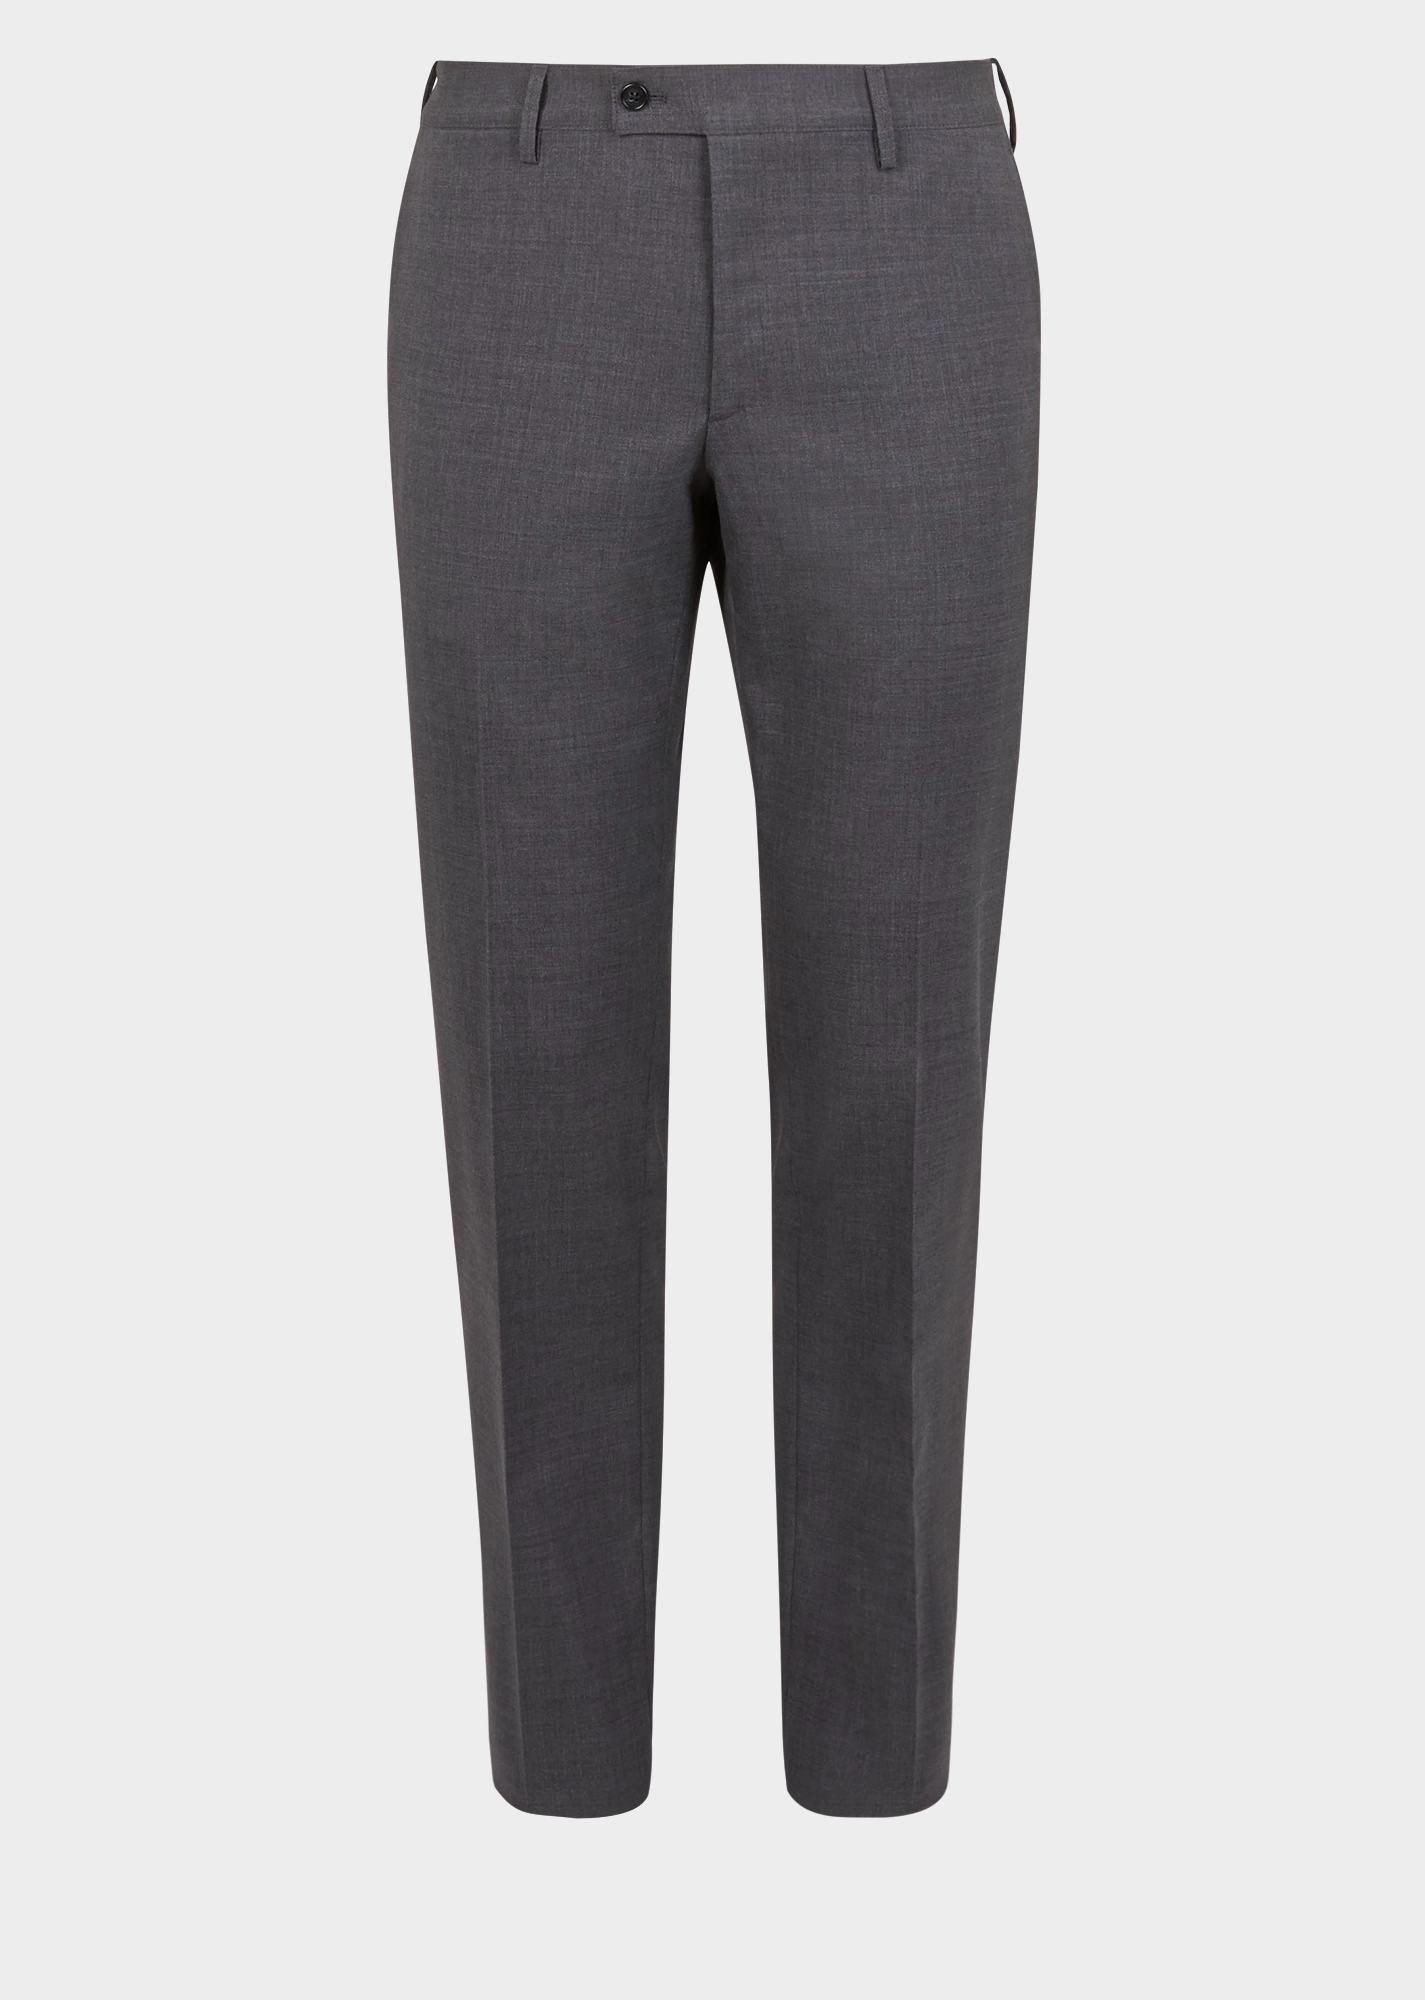 Trousers PNG HD-PlusPNG.com-1425 - Trousers PNG HD